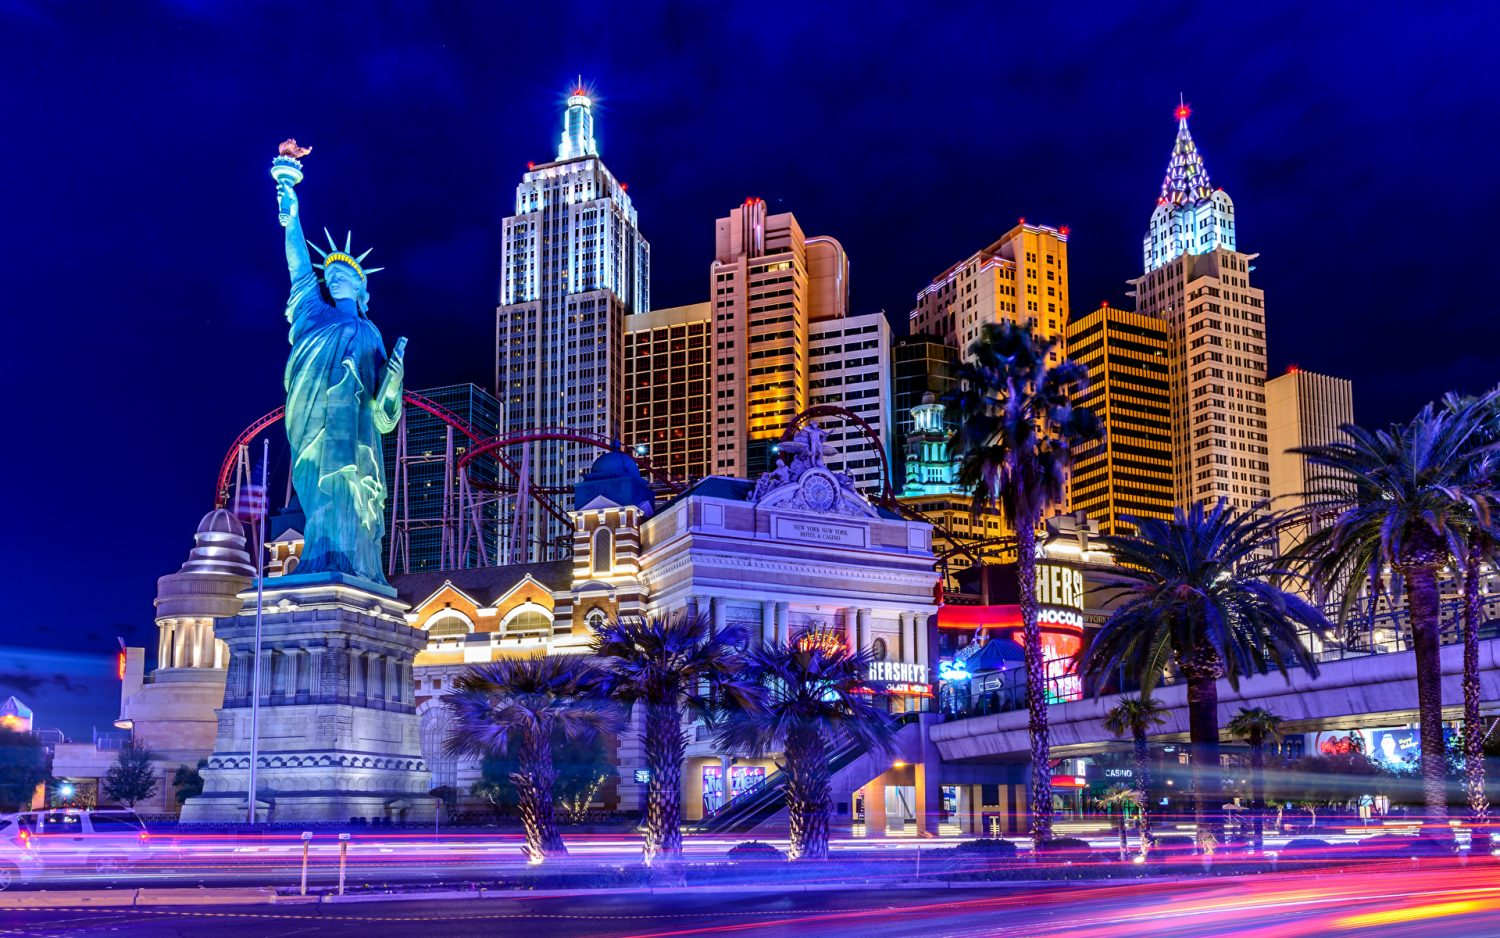 Las Vegas New York New York